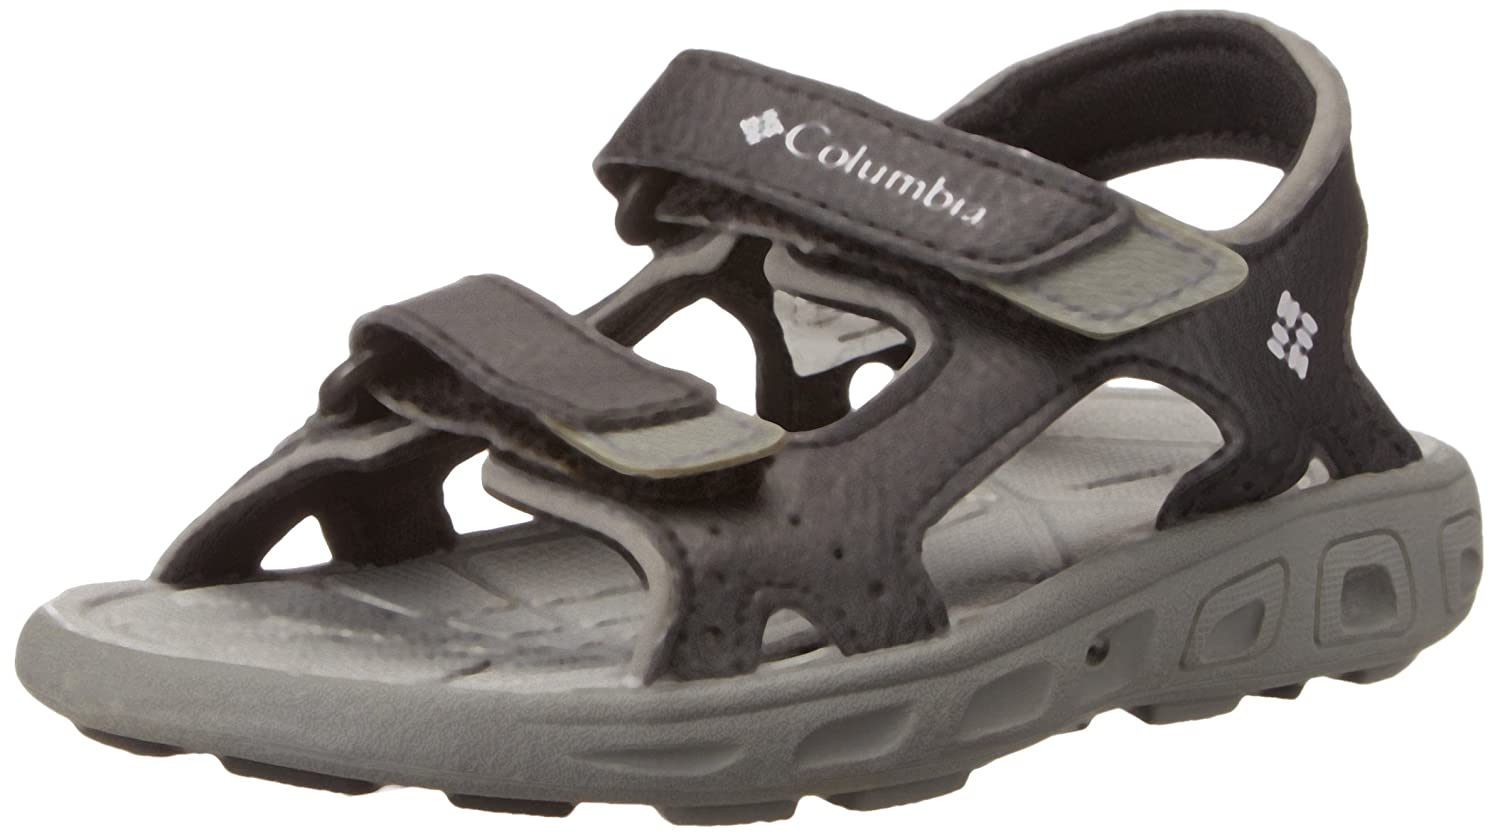 Columbia Unisex Kids' TechsunTM Vent